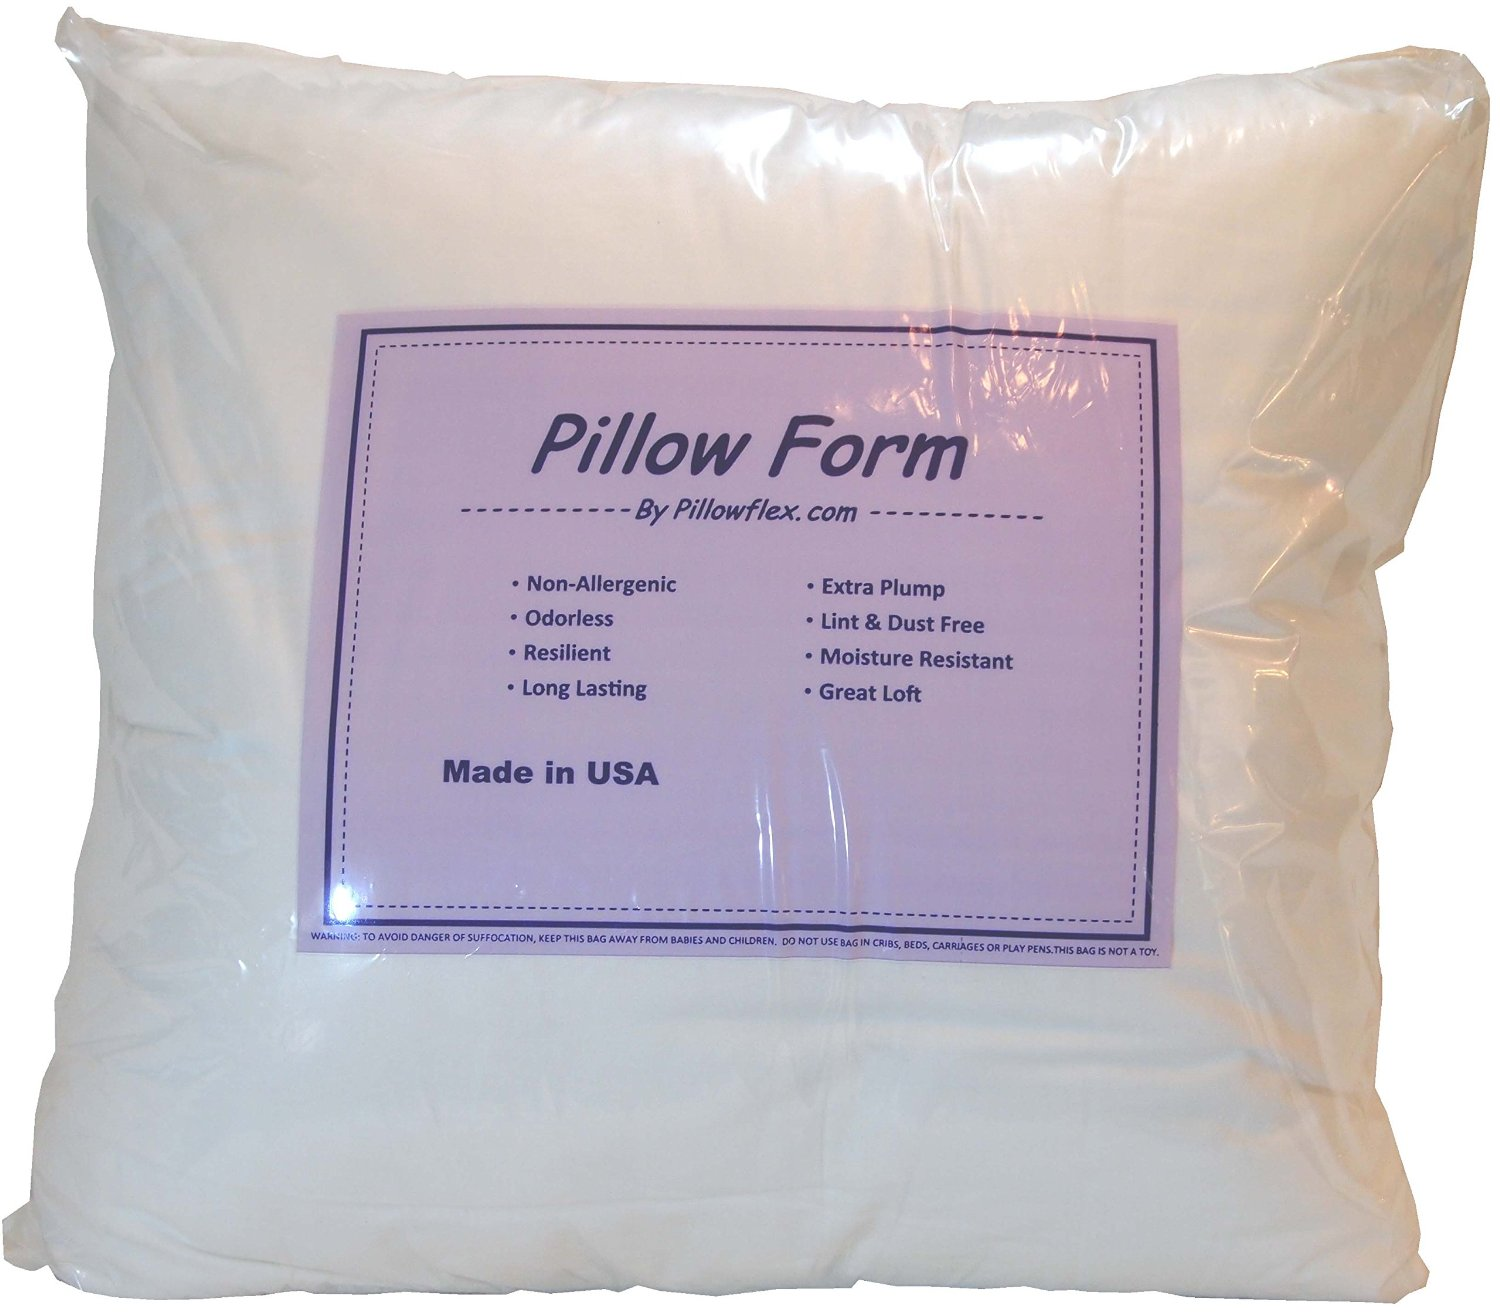 phoenix itm polyester cole pillow non cushion face fibre allergenic stuffing king filler smiley filling toy